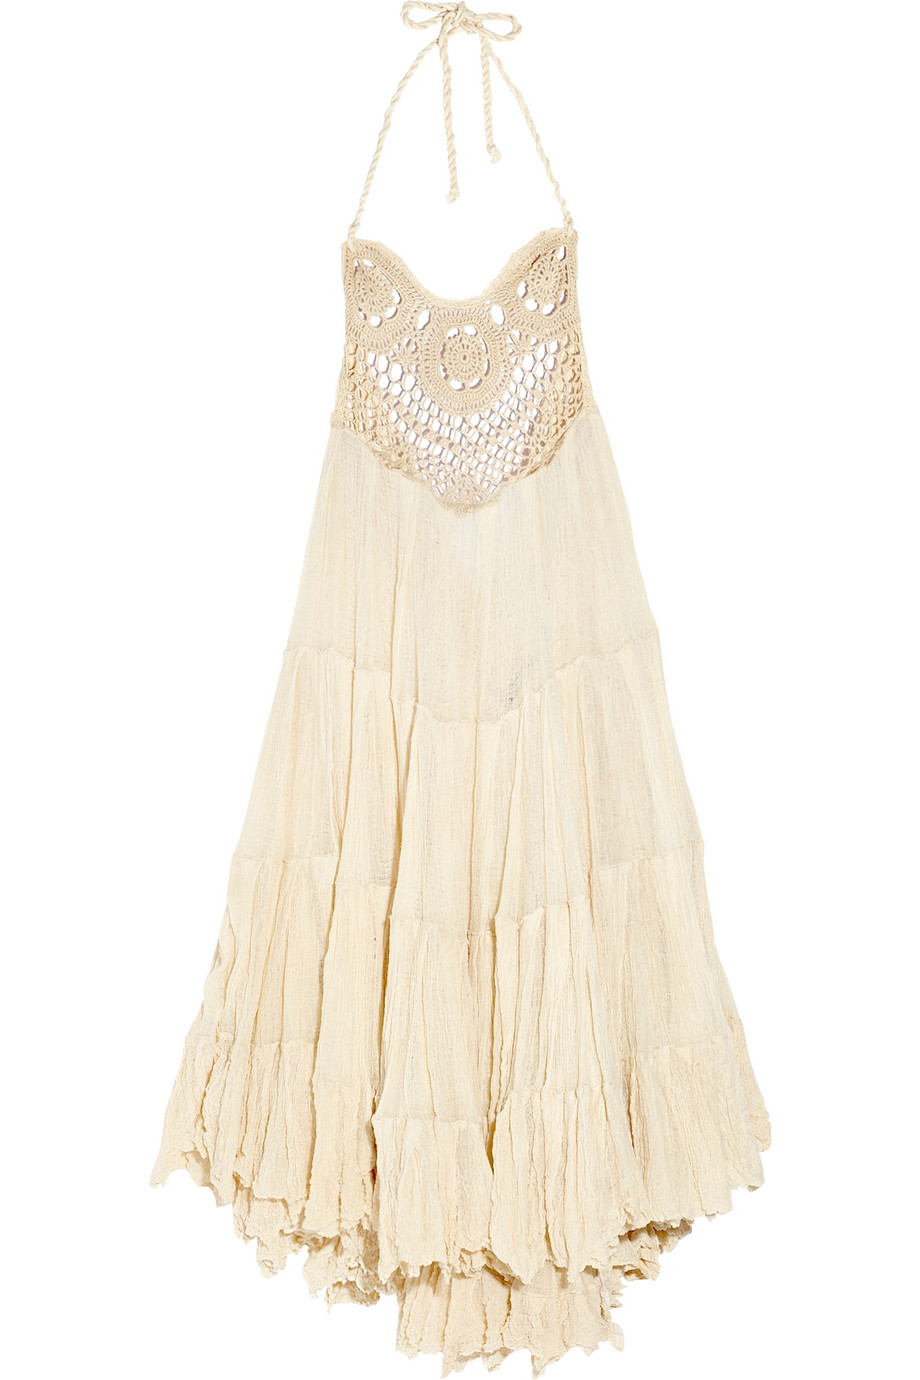 Lyst Sestra Moja Waterfall Cotton Cheese Cloth Dress In